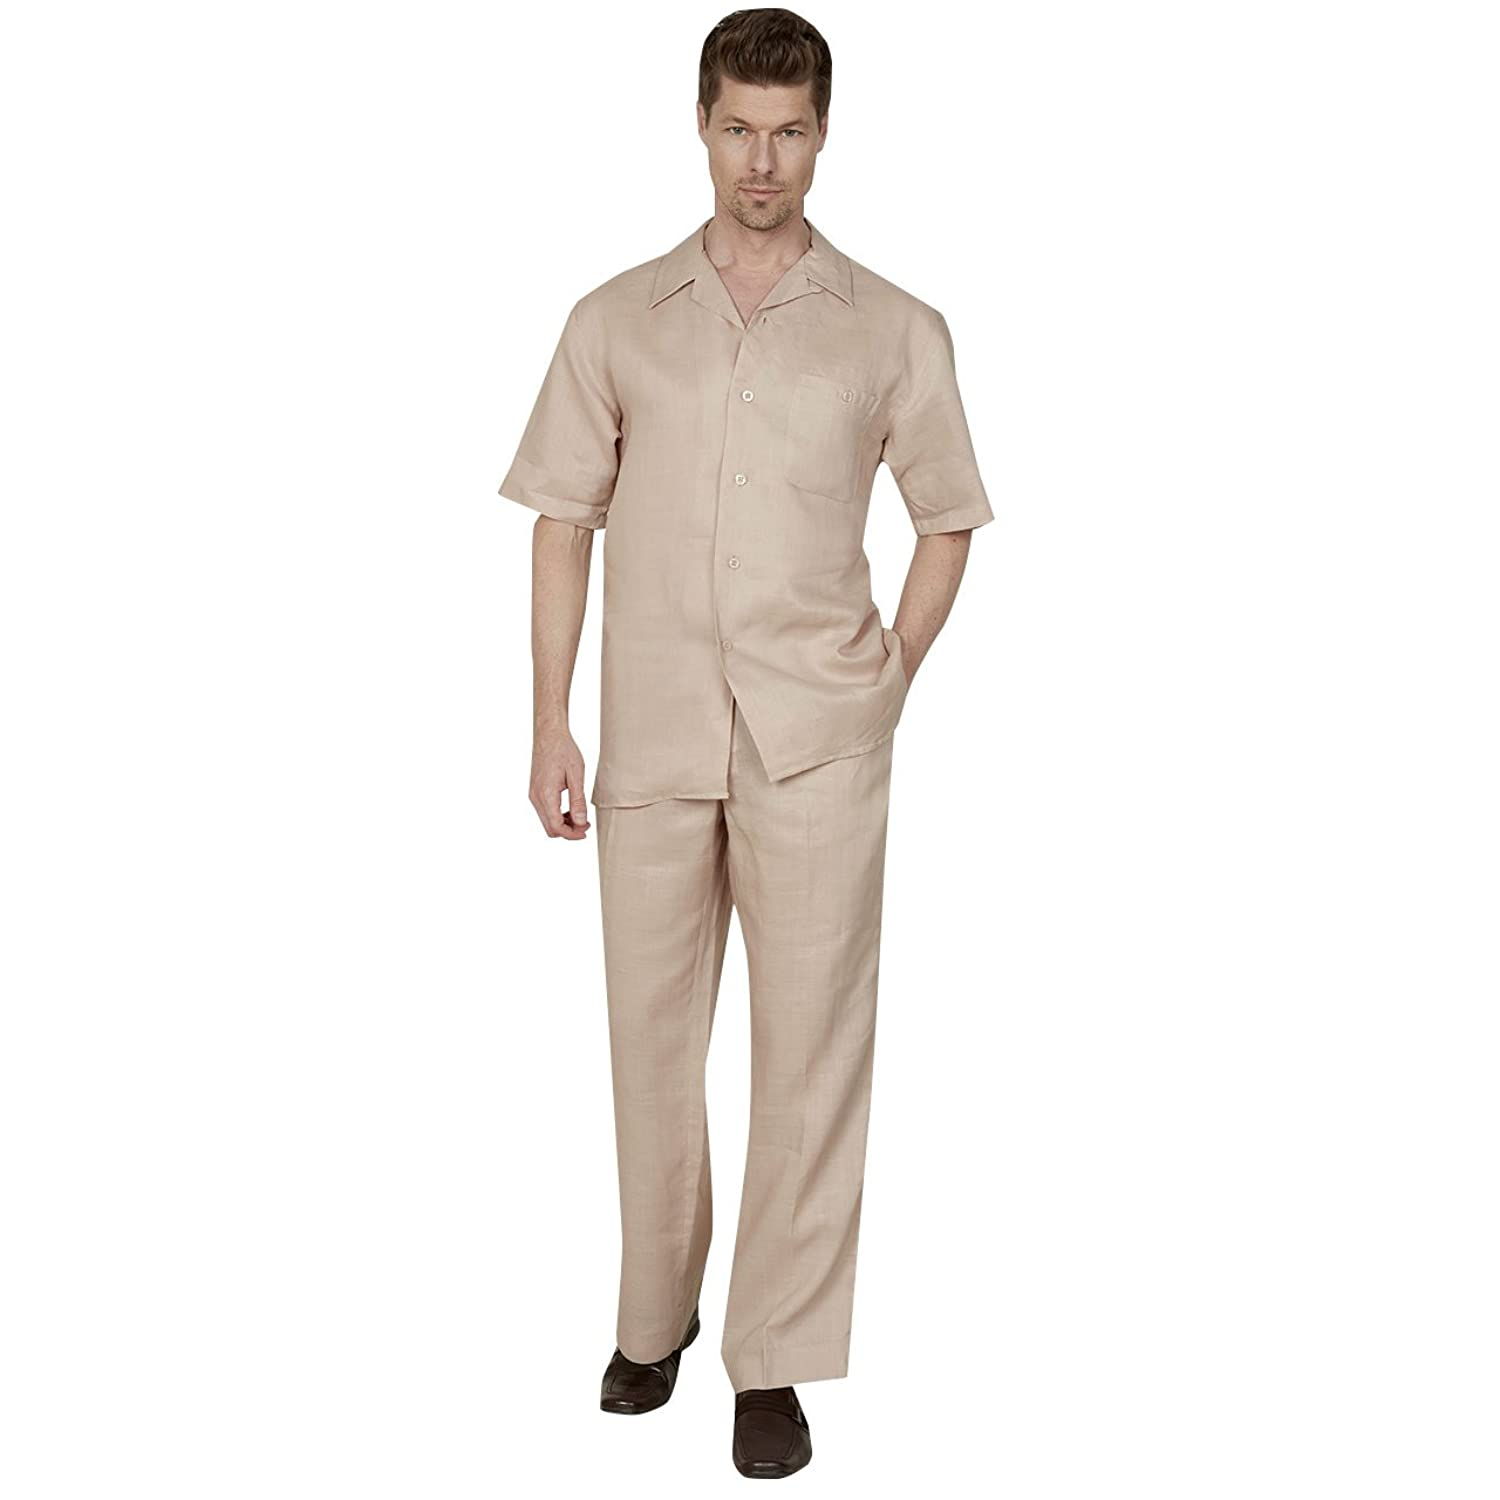 1930s Men's Costumes: Gangster, Clyde Barrow, Mummy, Dracula, Frankenstein  100% Linen Suit with 1-button Classic Pocket  AT vintagedancer.com